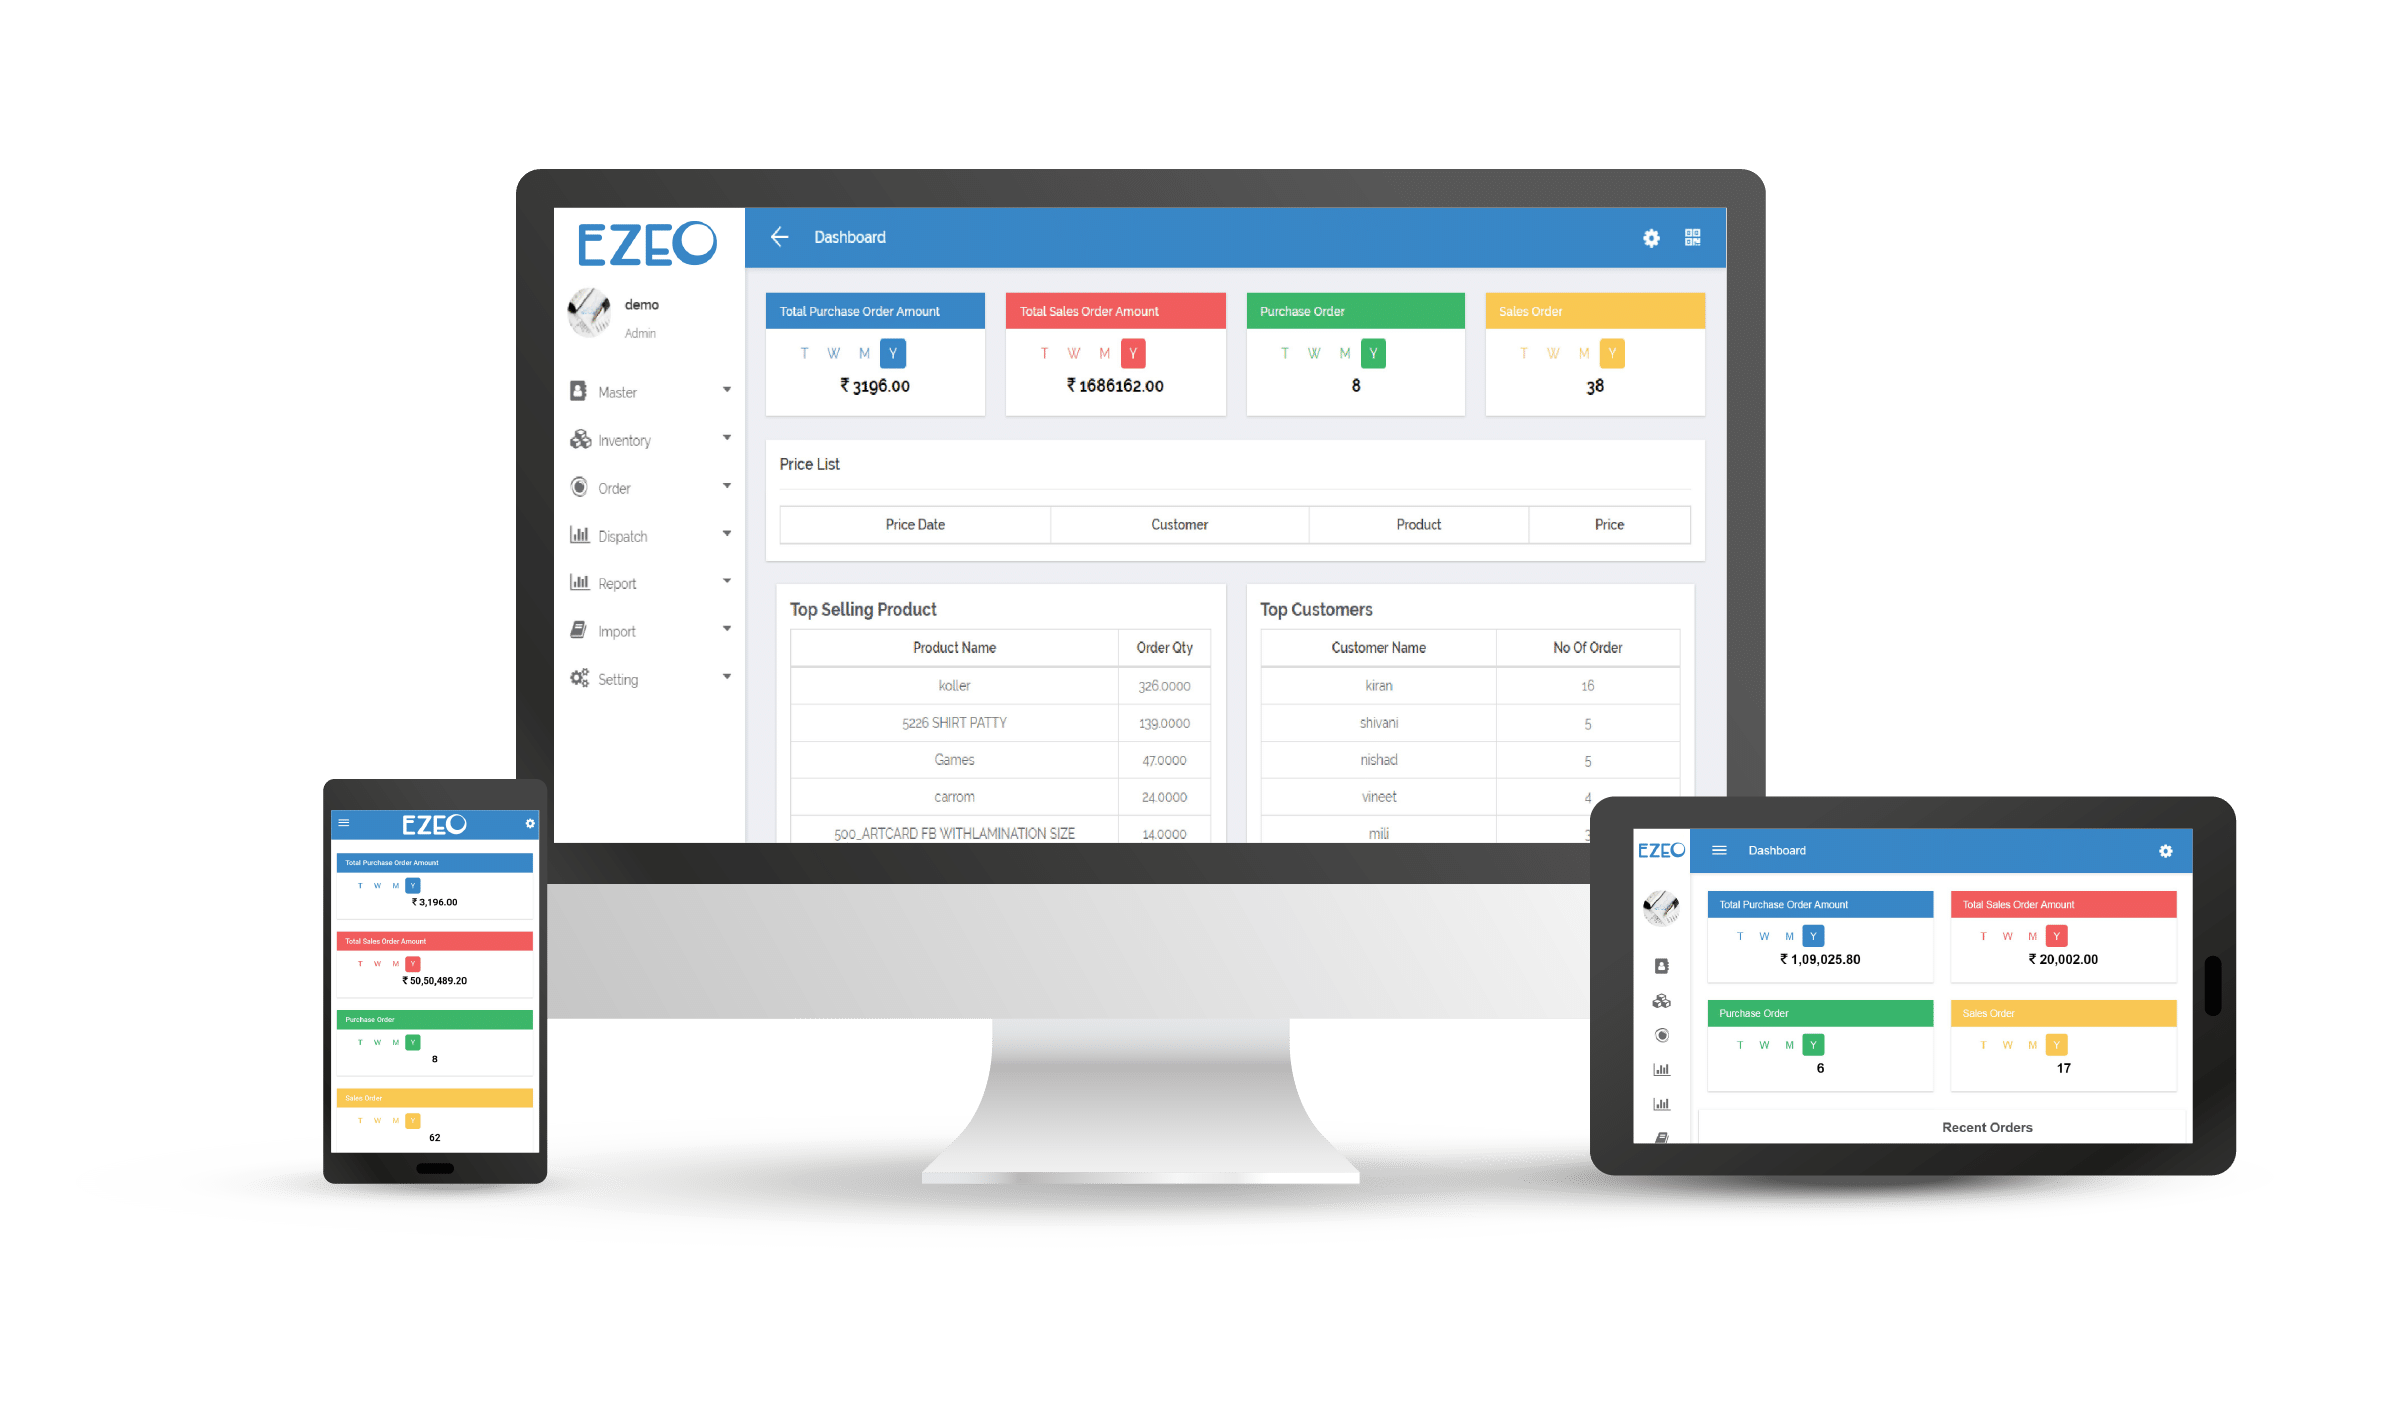 EZEO a Supply Chain Platform by Naapbooks